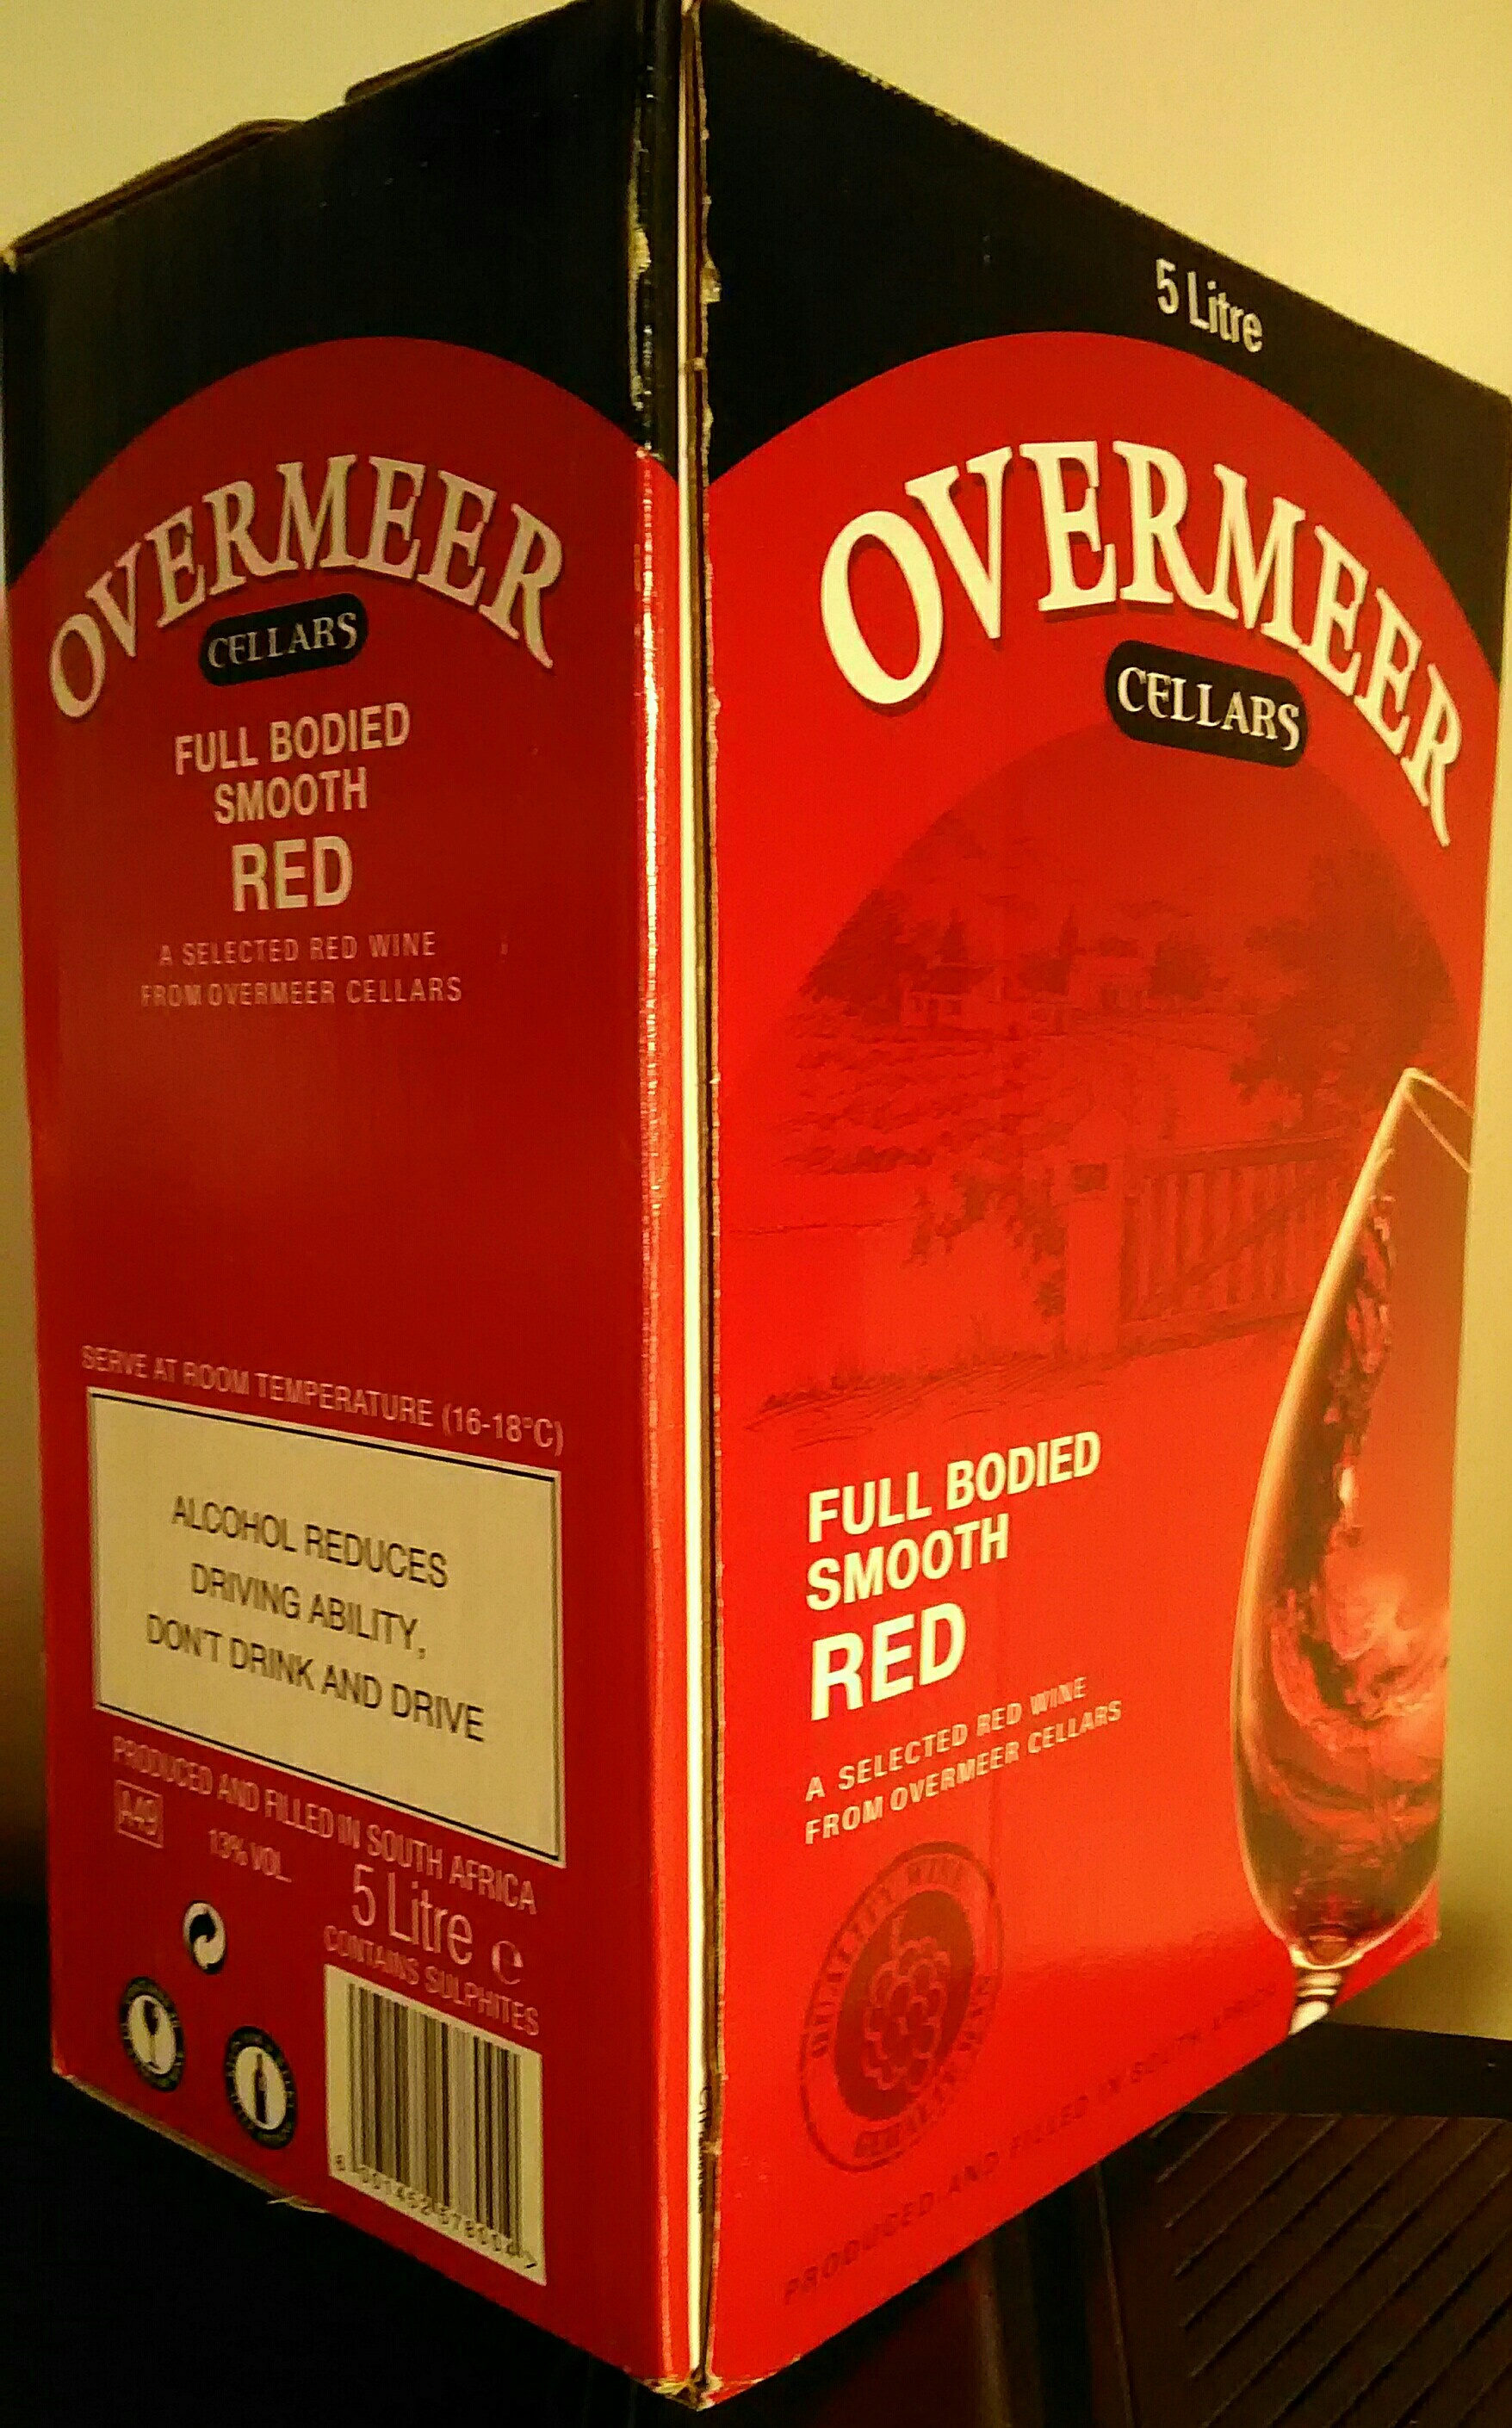 OVERMEER full bodied smooth red - Produit - fr